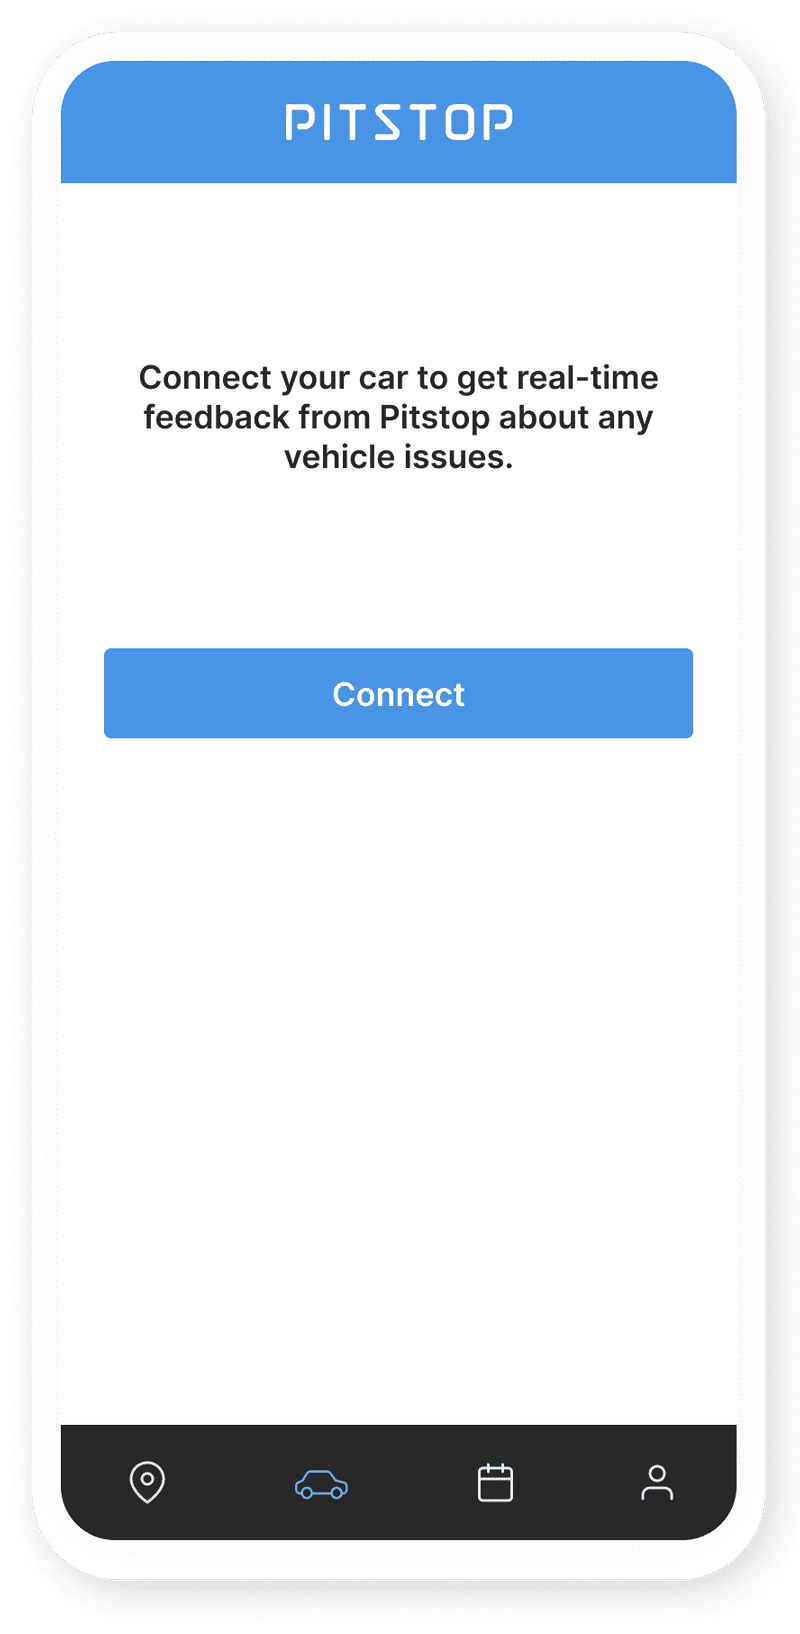 Pitstop mobile app prompting the user to connect their car to get real-time feedback about any vehicle issues